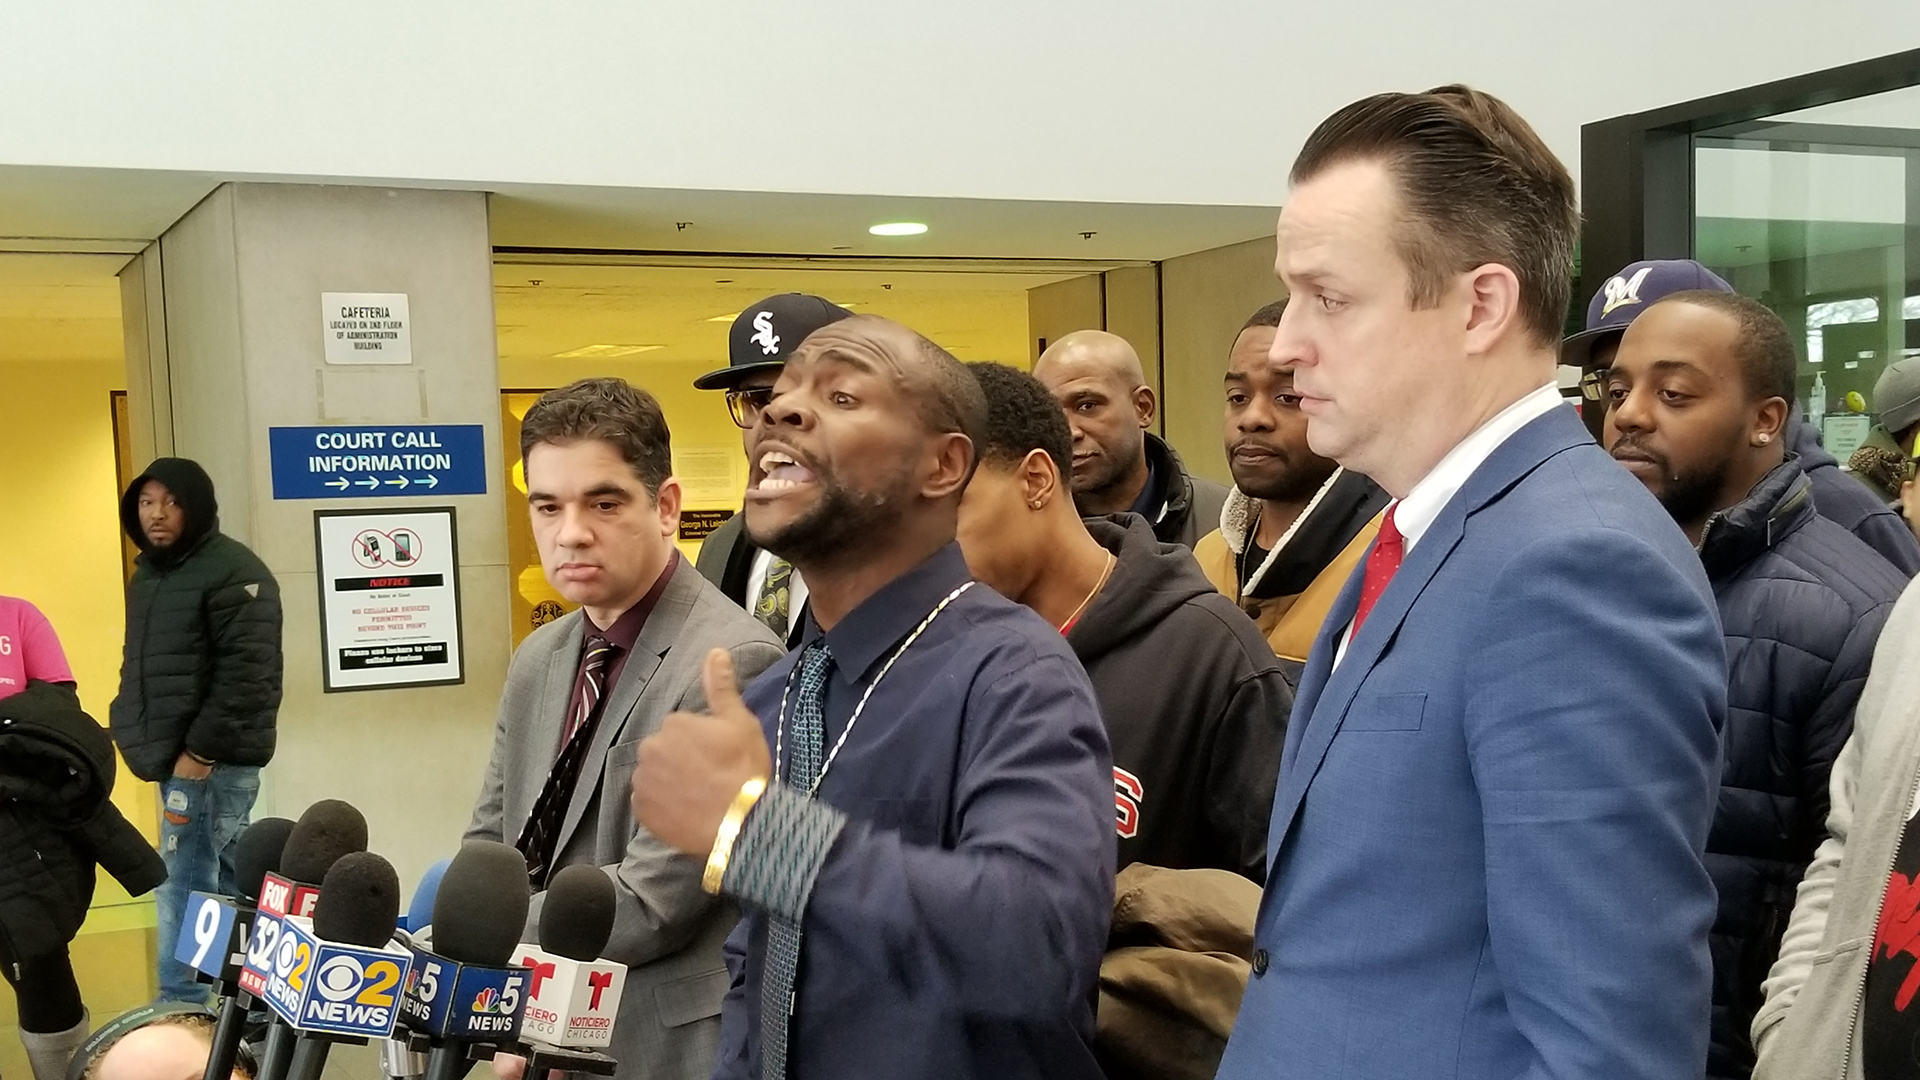 Kim Wilbourn, center, speaks to media following his exoneration Monday, Feb. 11, 2019. (Matt Masterson / Chicago Tonight)